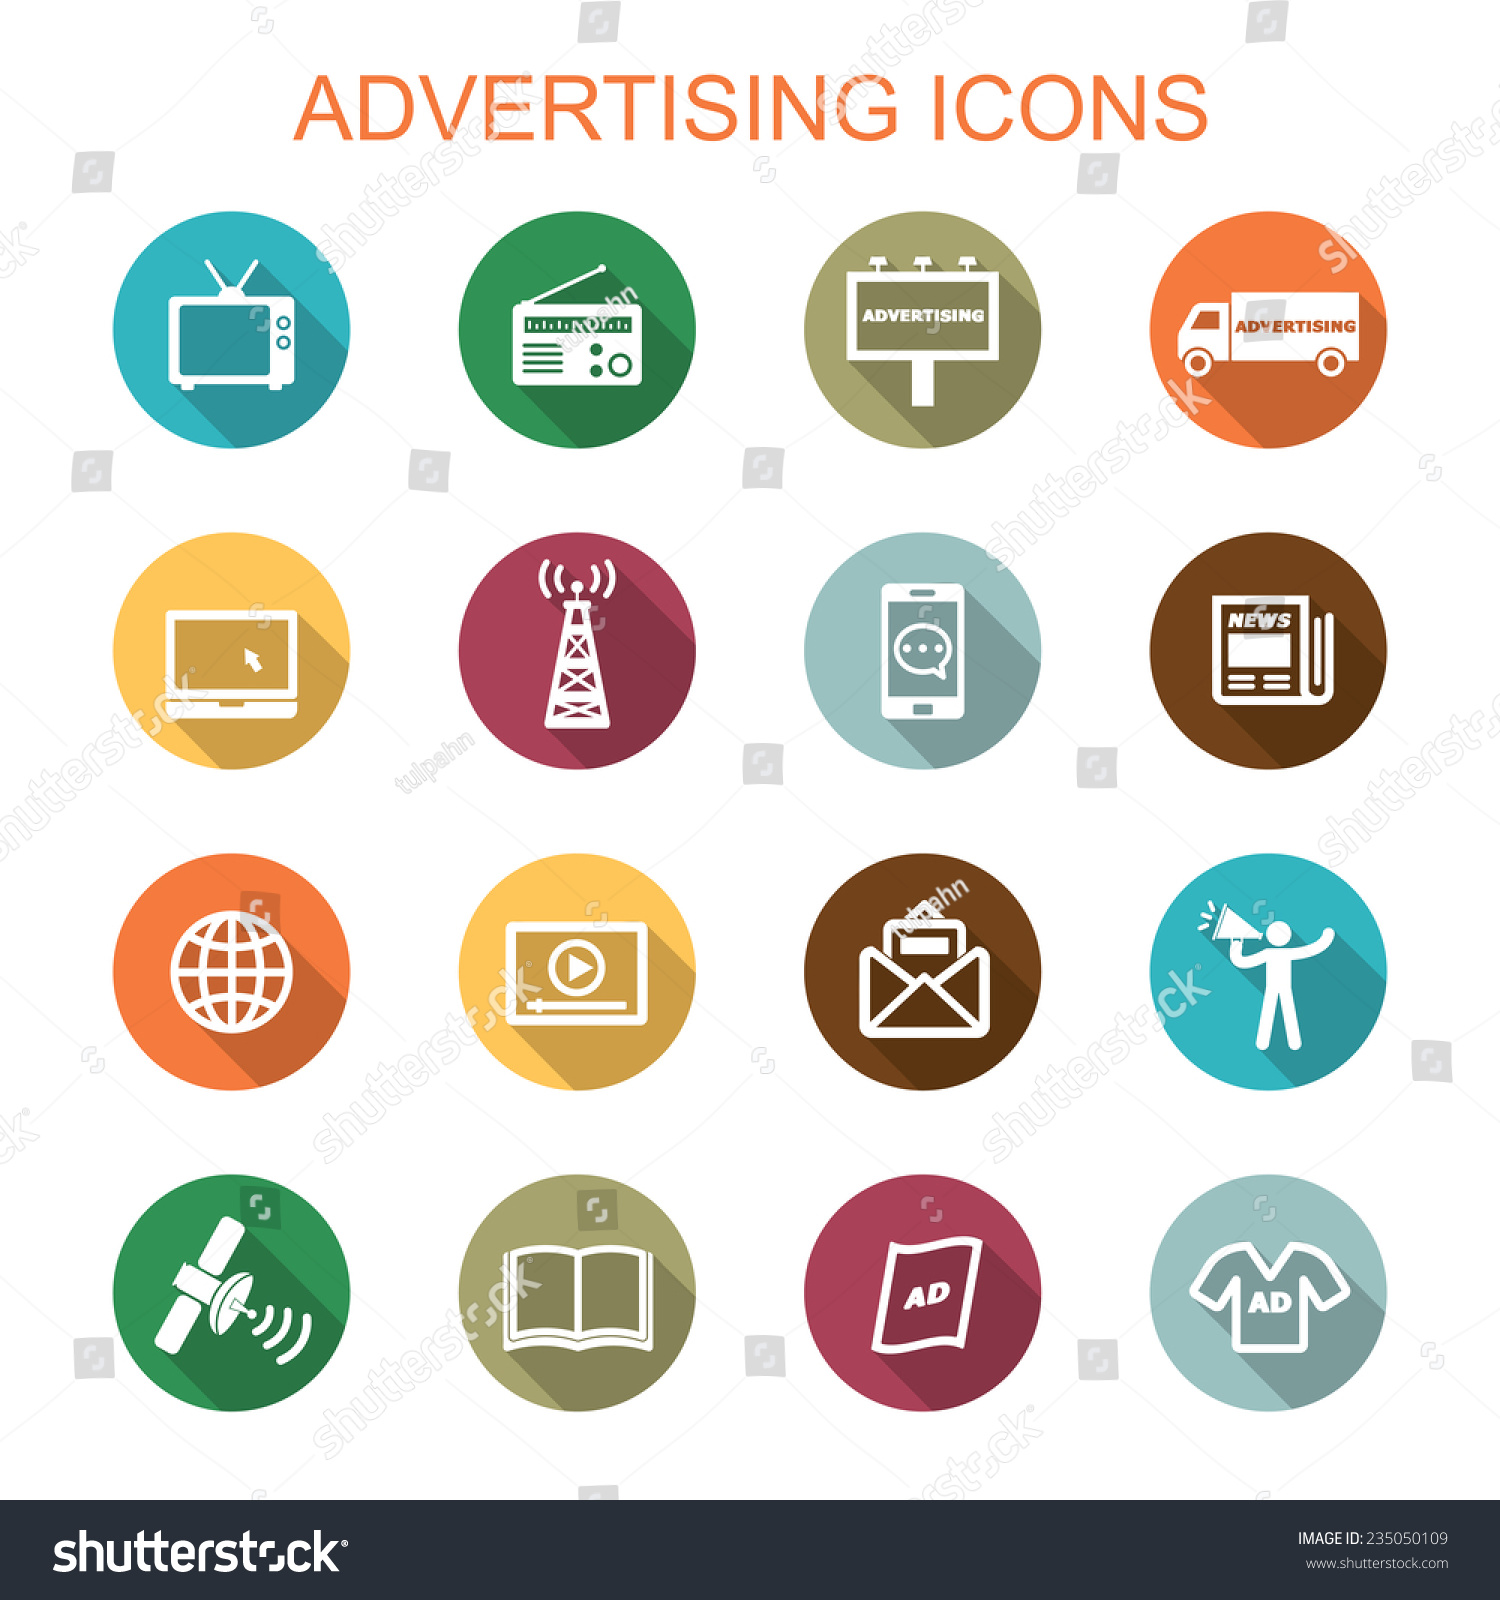 Advertising Long Shadow Icons Flat Vector Stock Vector ...